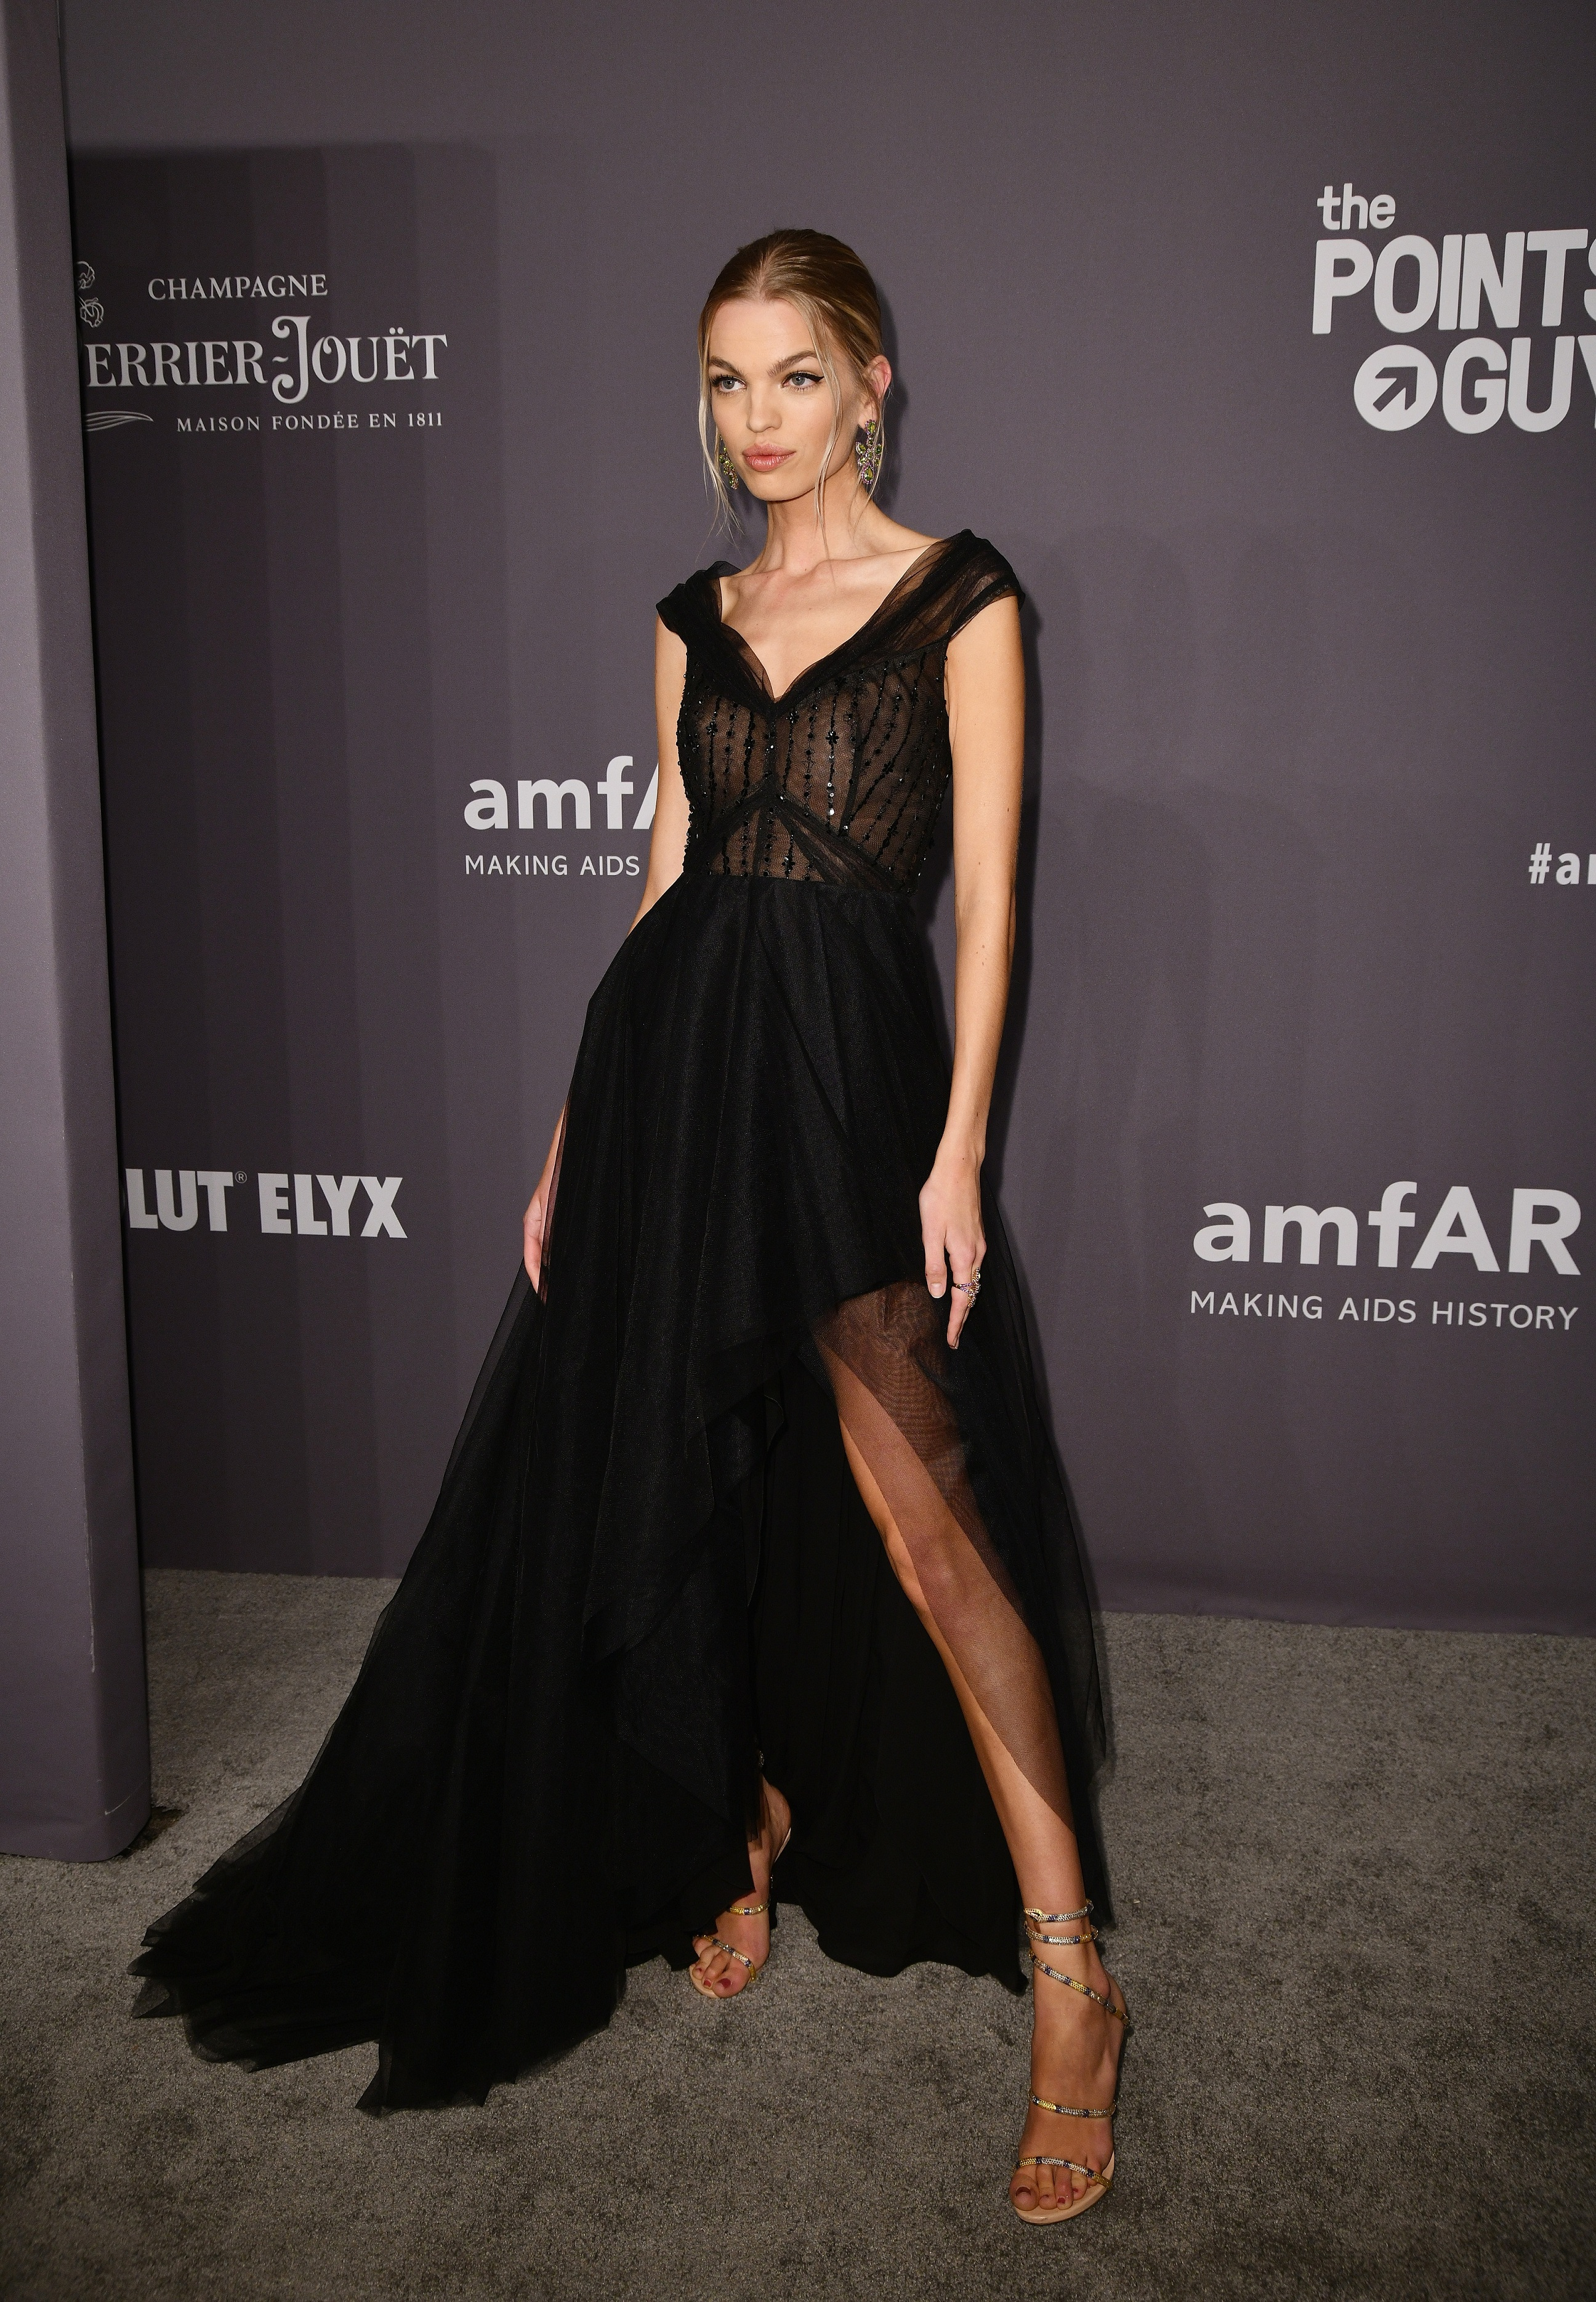 NEW YORK, NY - FEBRUARY 06:  Daphne Groeneveld attends the amfAR New York Gala 2019 at Cipriani Wall Street on February 6, 2019 in New York City.  (Photo by Jared Siskin/amfAR/Getty Images)